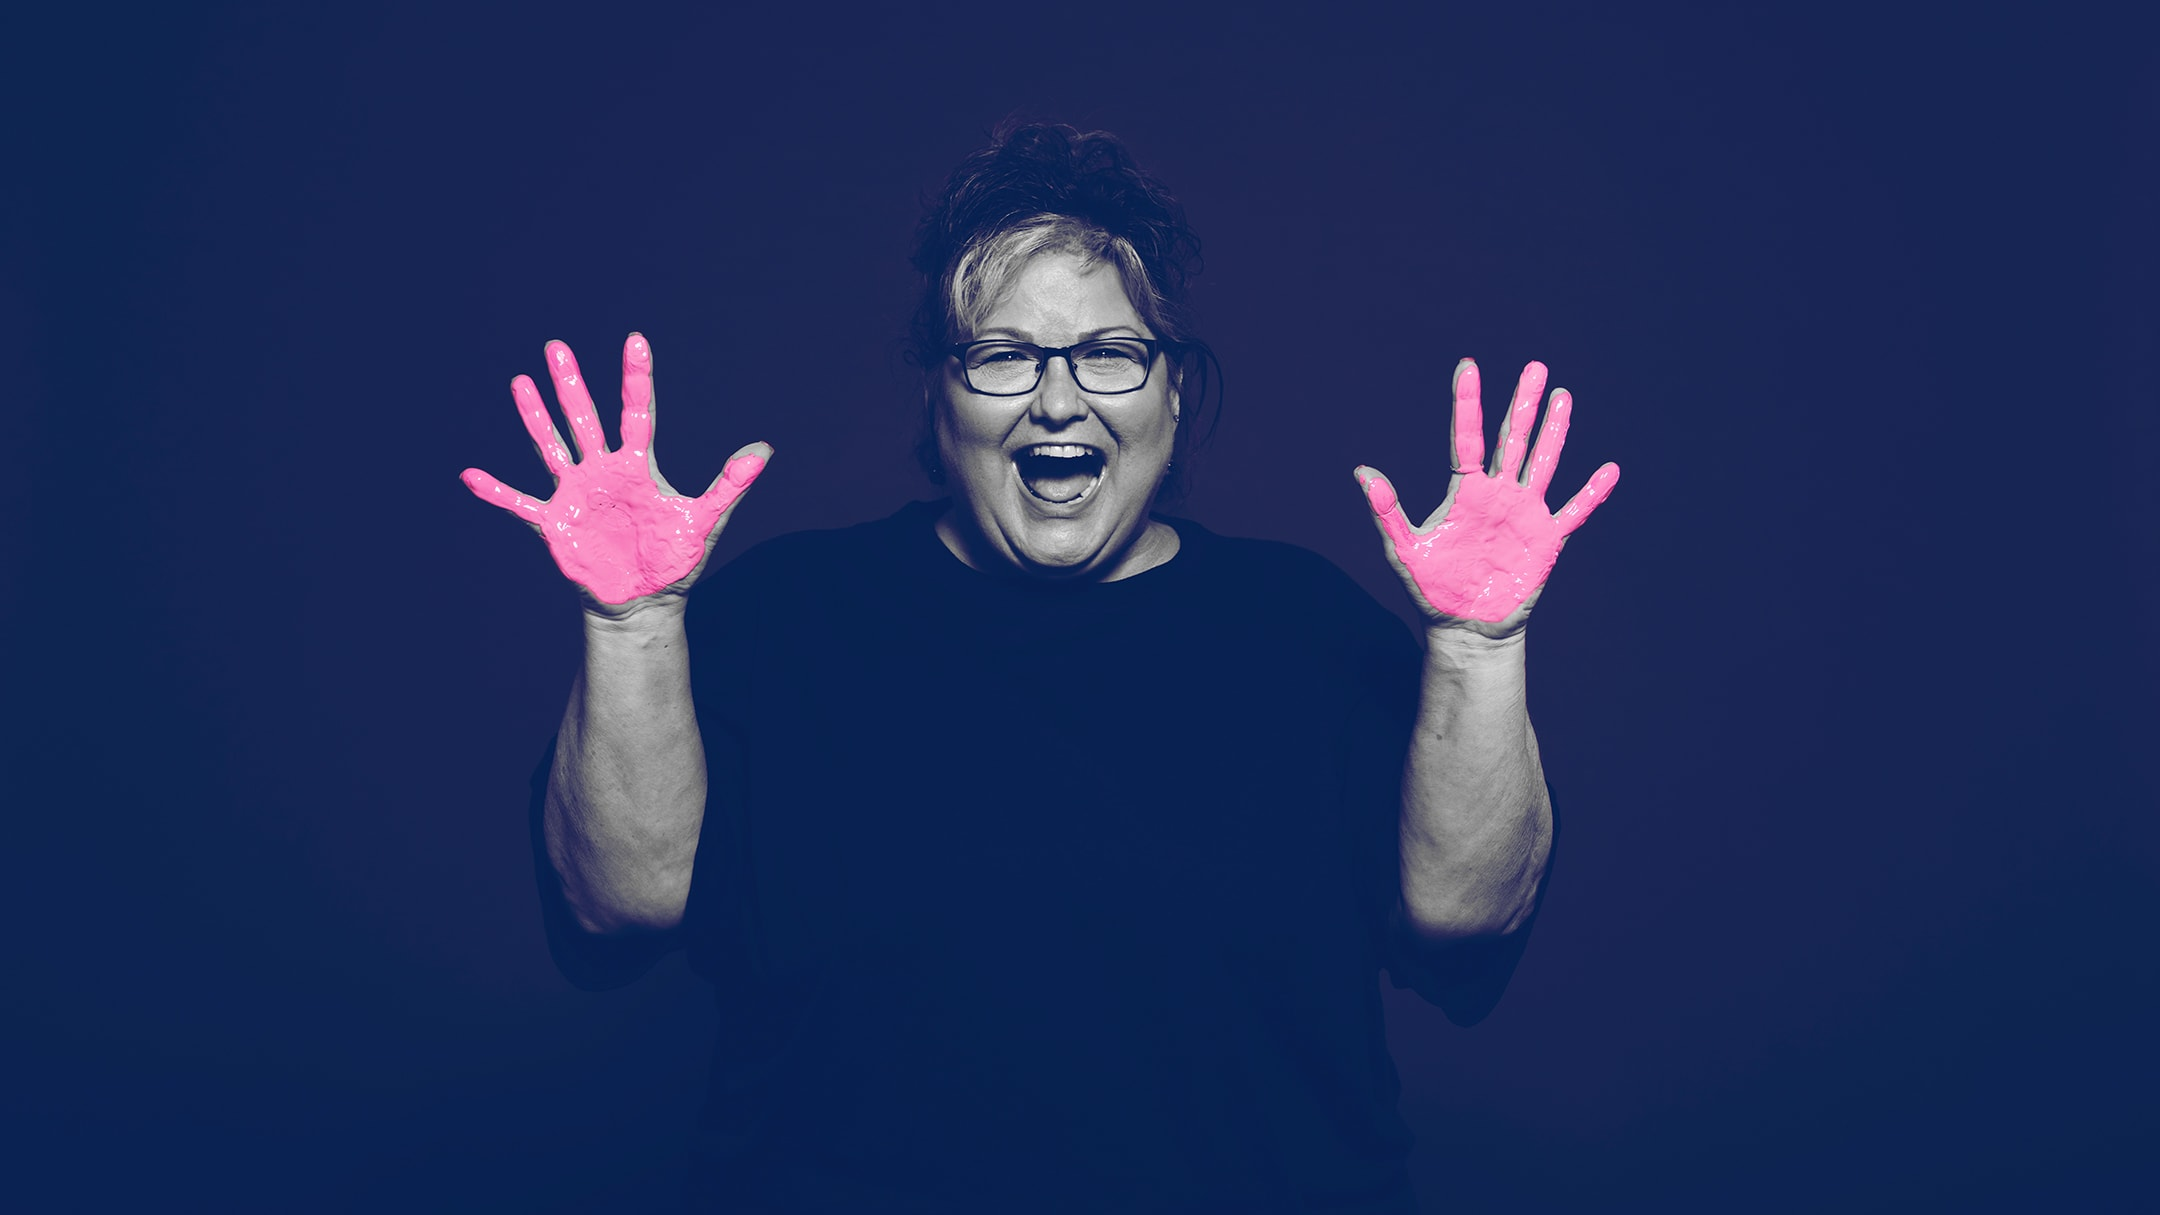 Breast cancer survivor posing for the in our hands campaign with pink paint on her hands